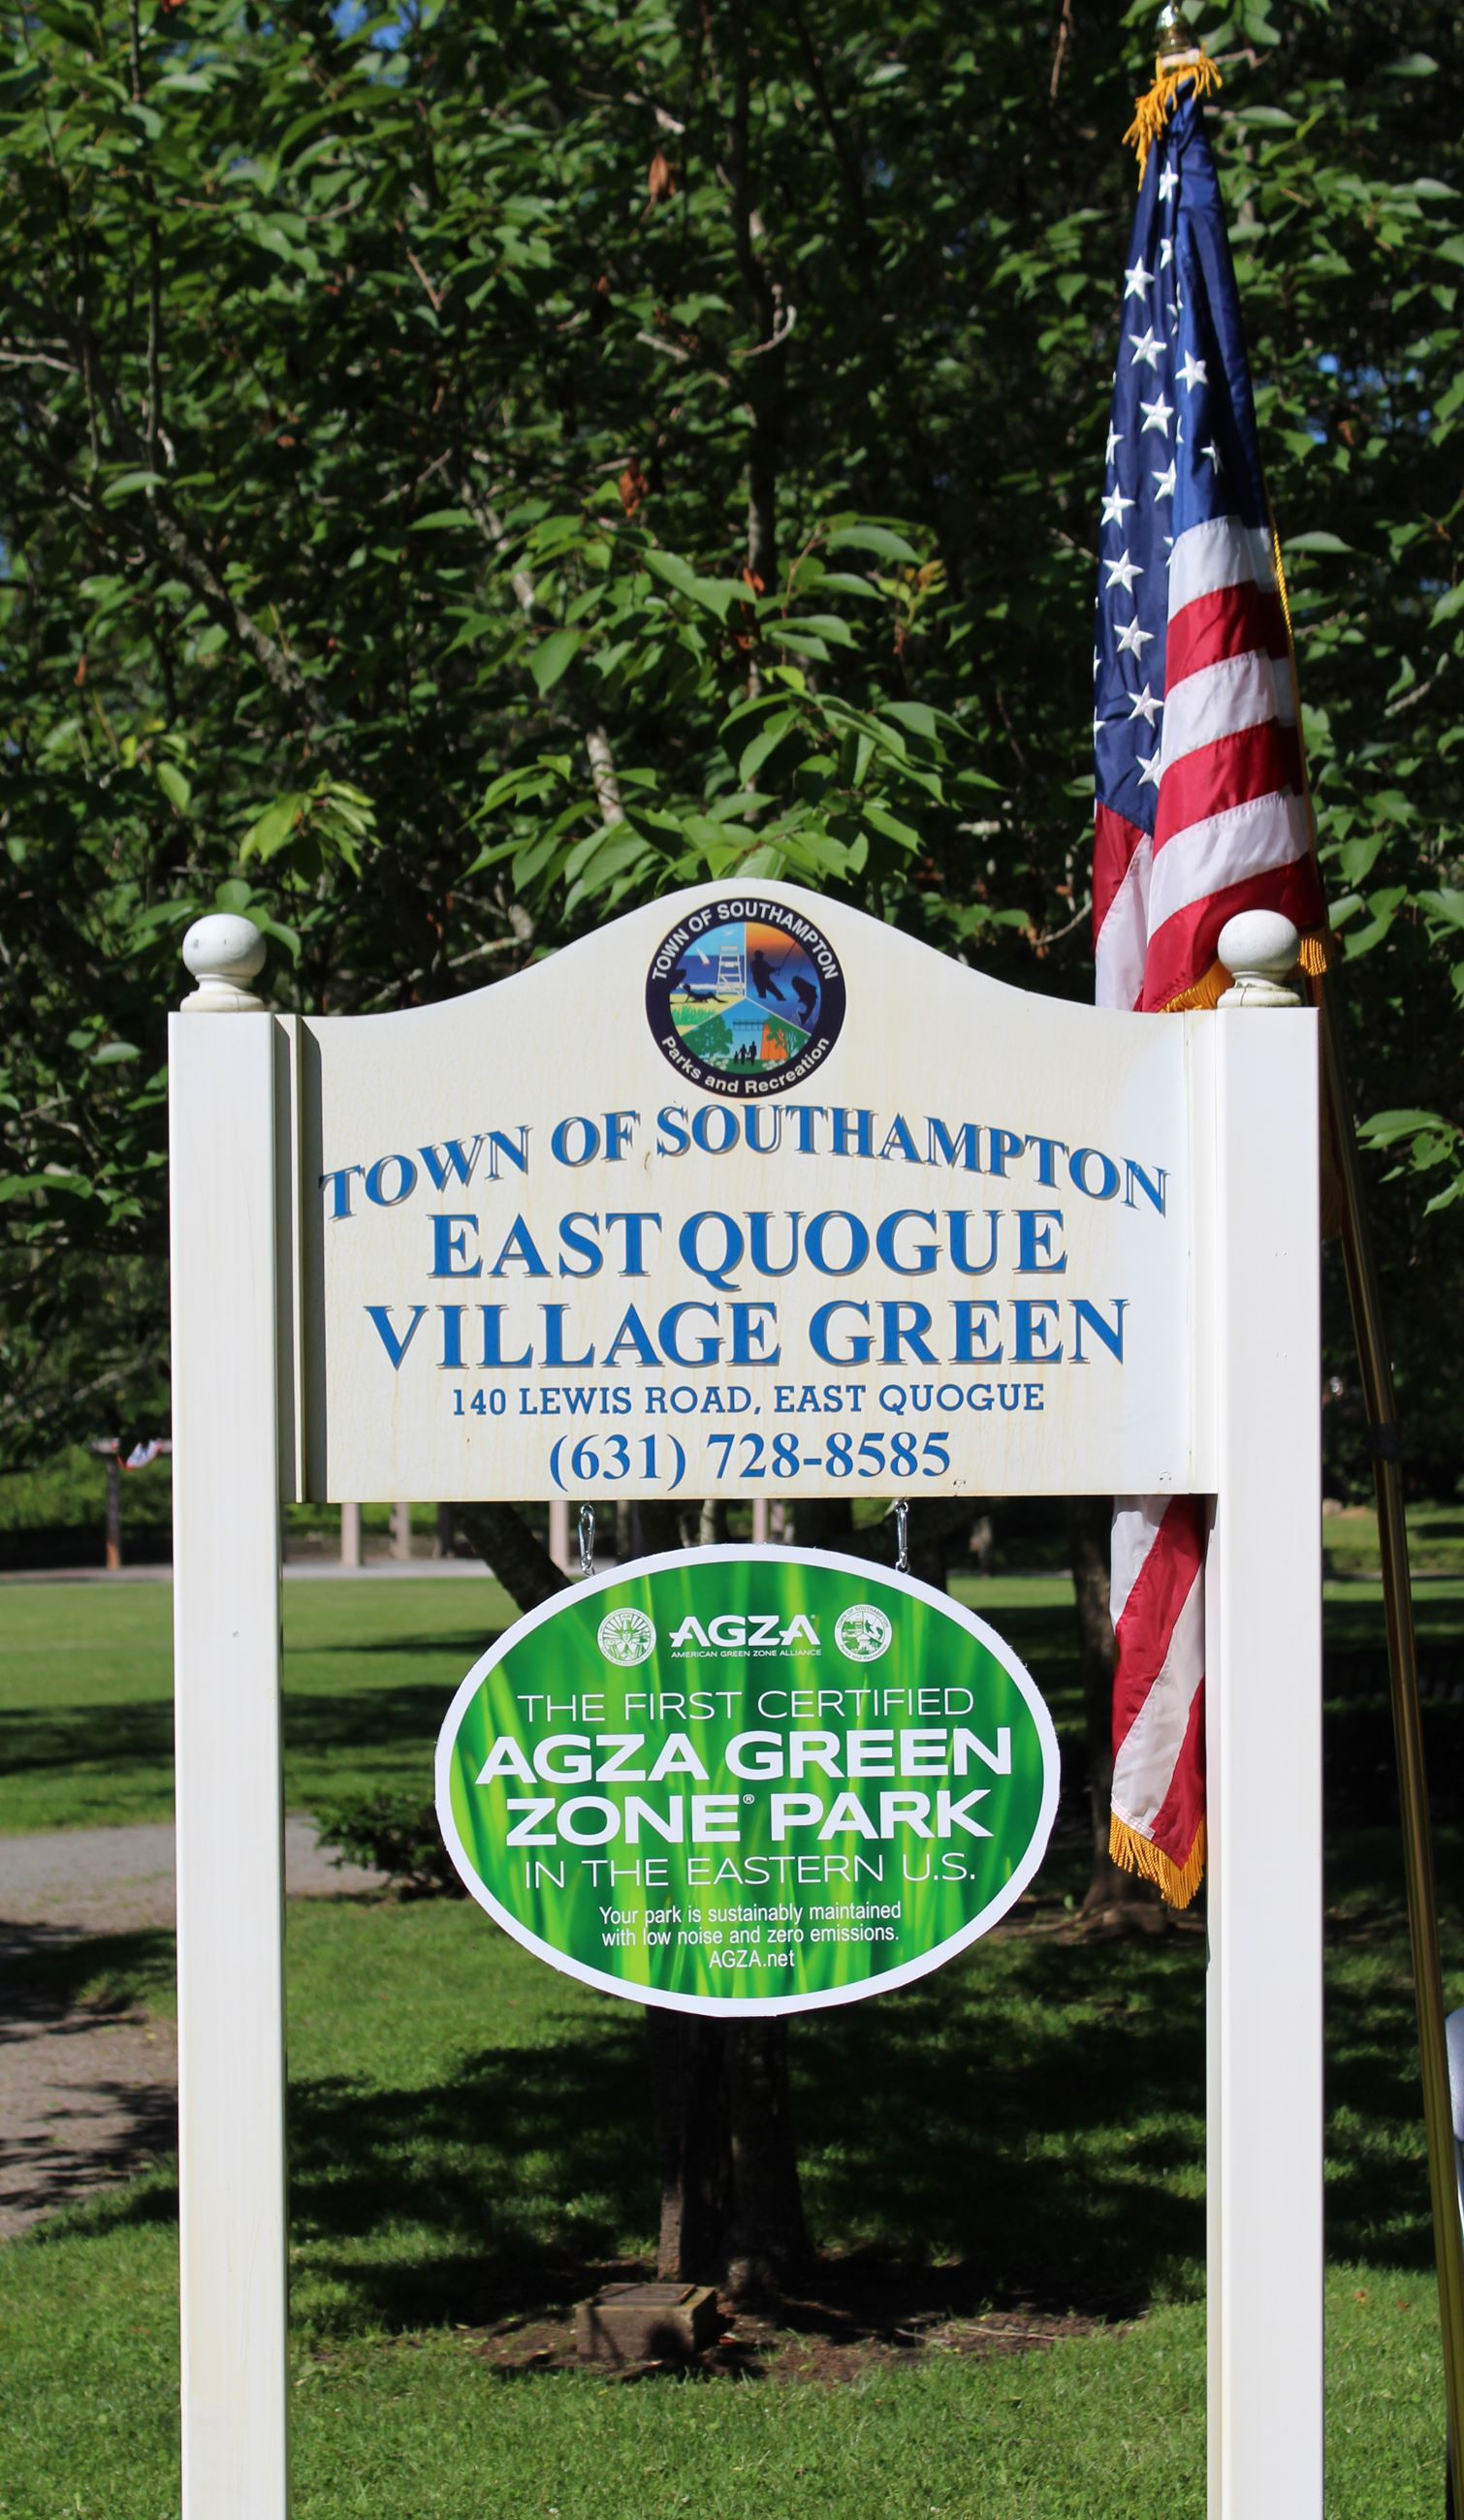 East Quogue Village Green - AGZA Green Zone® Park